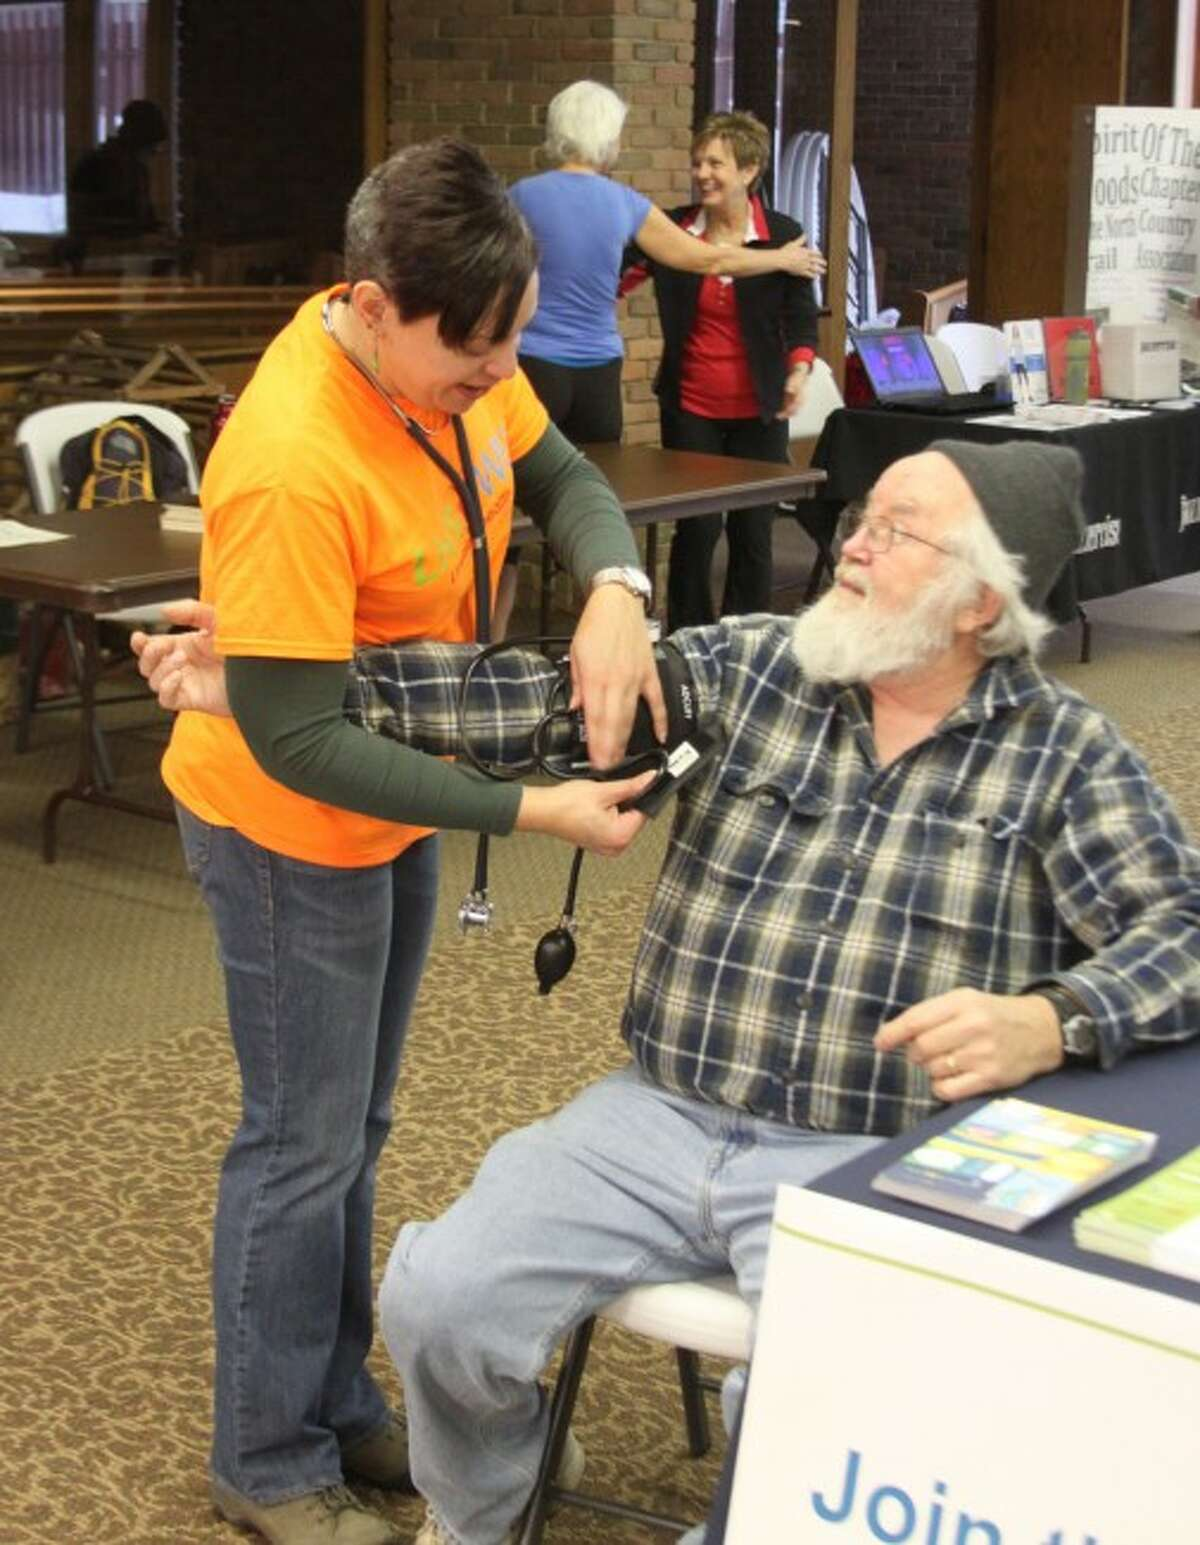 The second annual Care Fair takes place from 10 a.m. to 12 p.m. on Saturday, Jan. 10 at United Methodist Church in Manistee. The fair answers questions residents have about their health and how to have a healthy lifestyle.